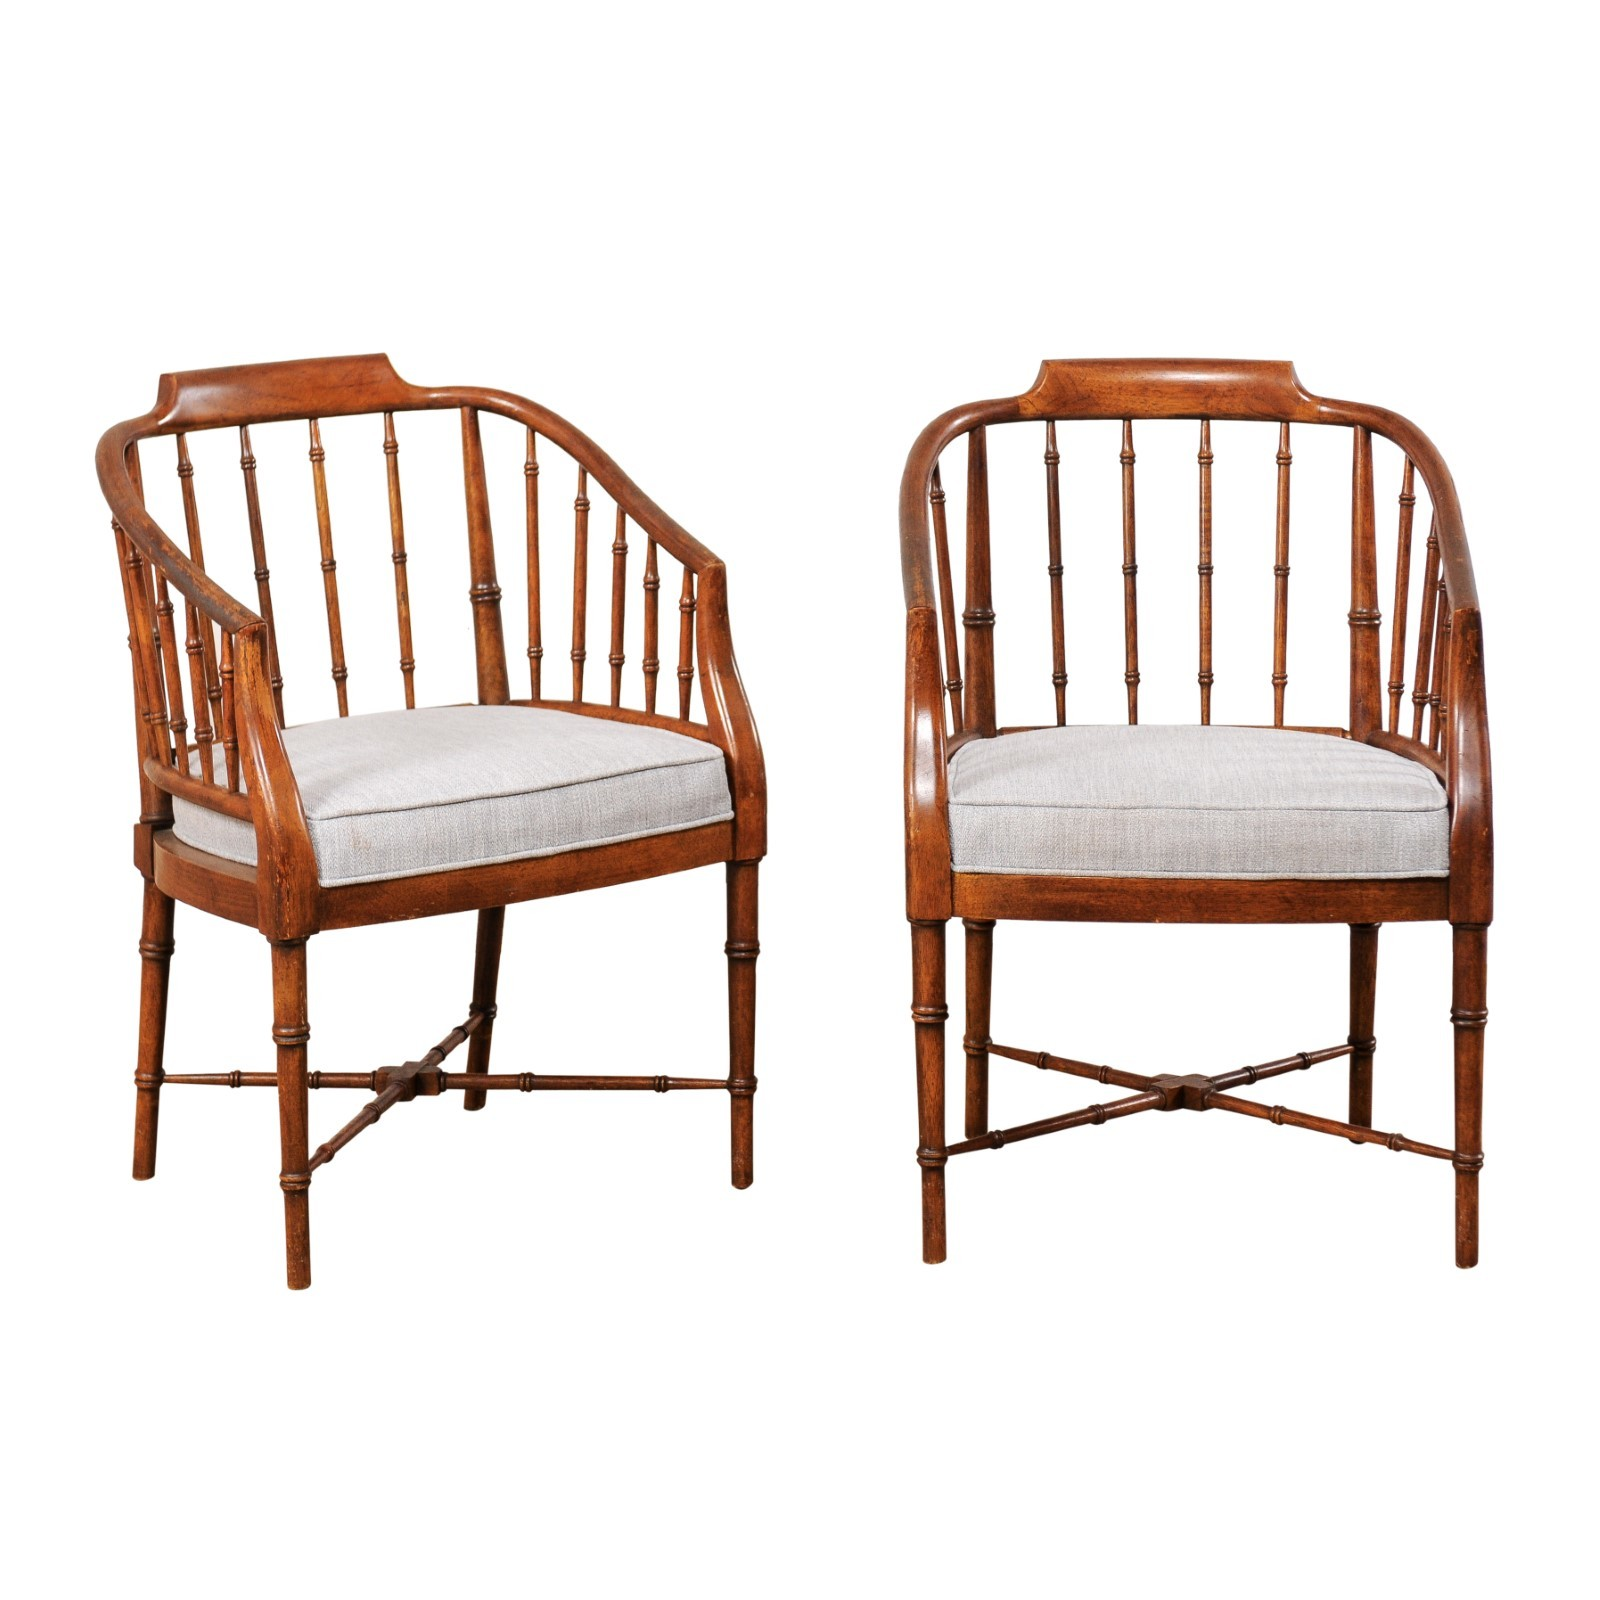 Pair Mid-Century Faux-Bamboo Carved Chairs